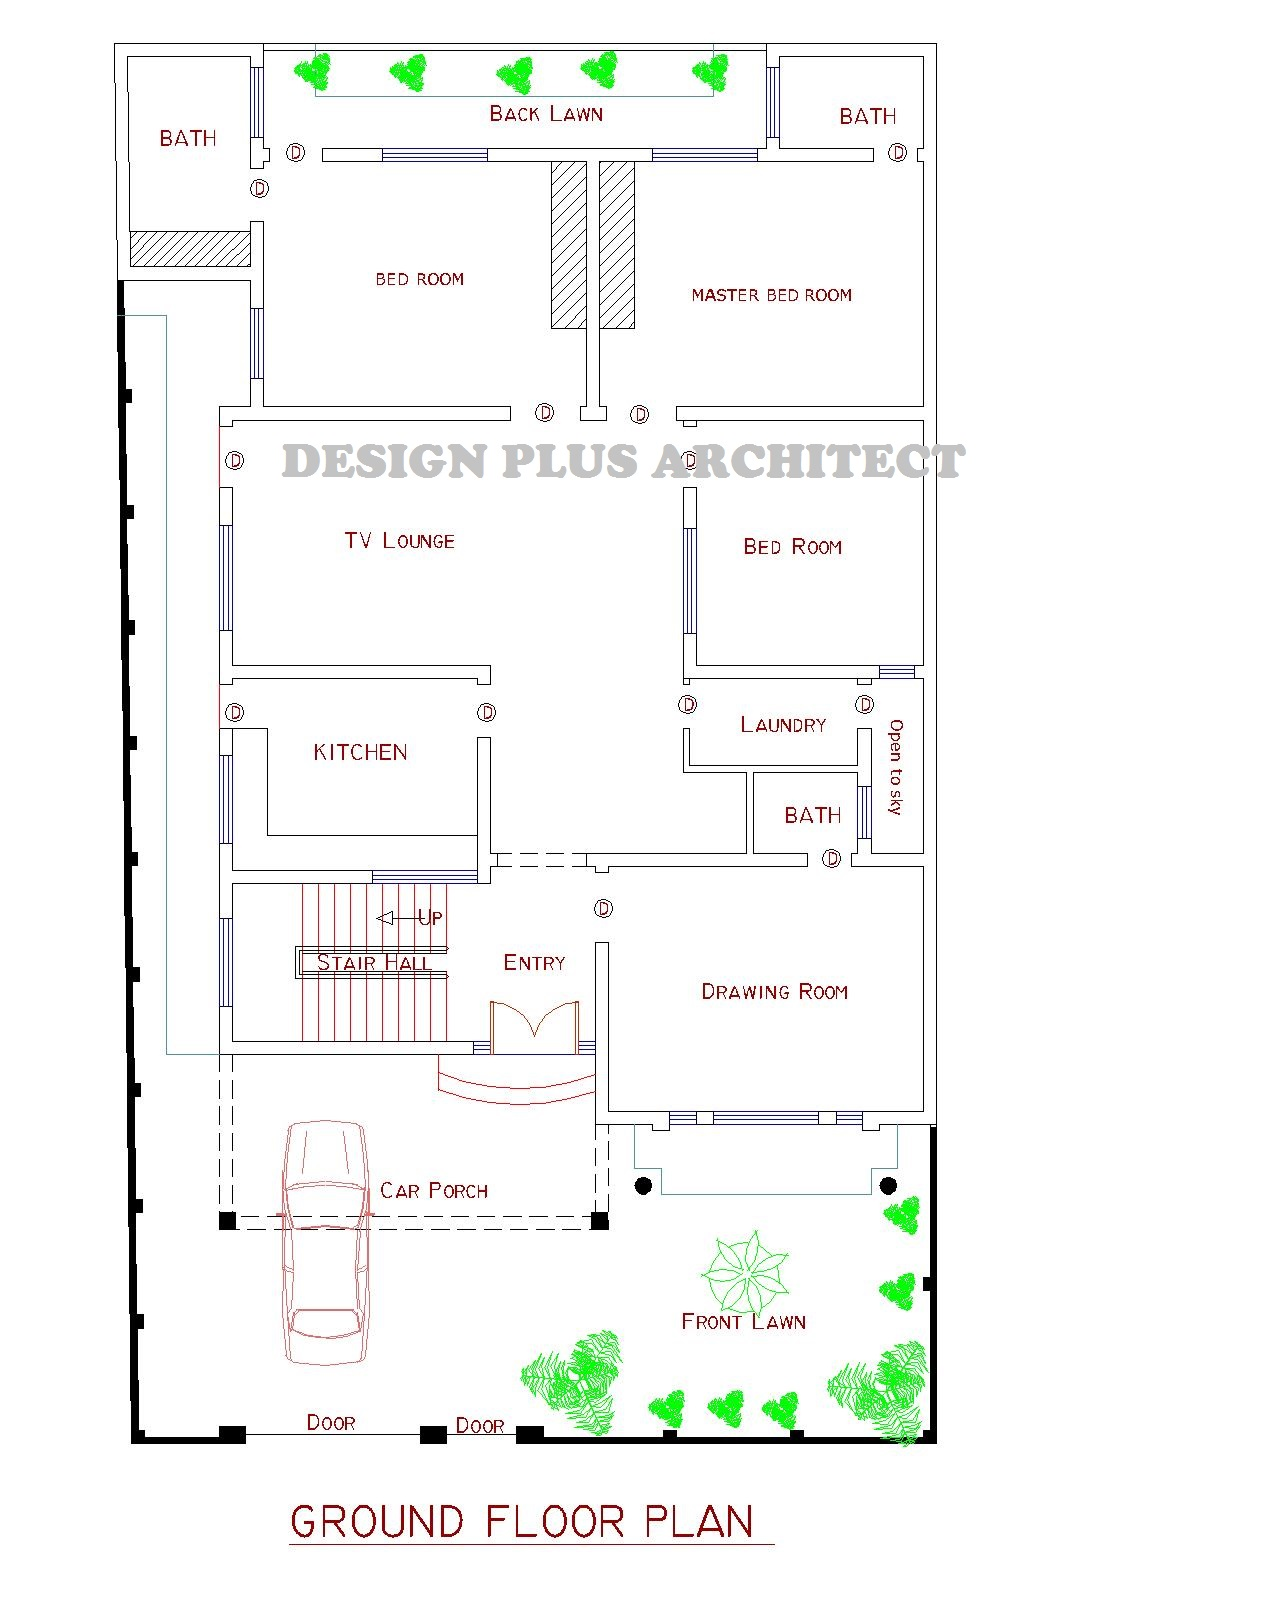 Home plans in pakistan home decor architect designer for Best home plan sites